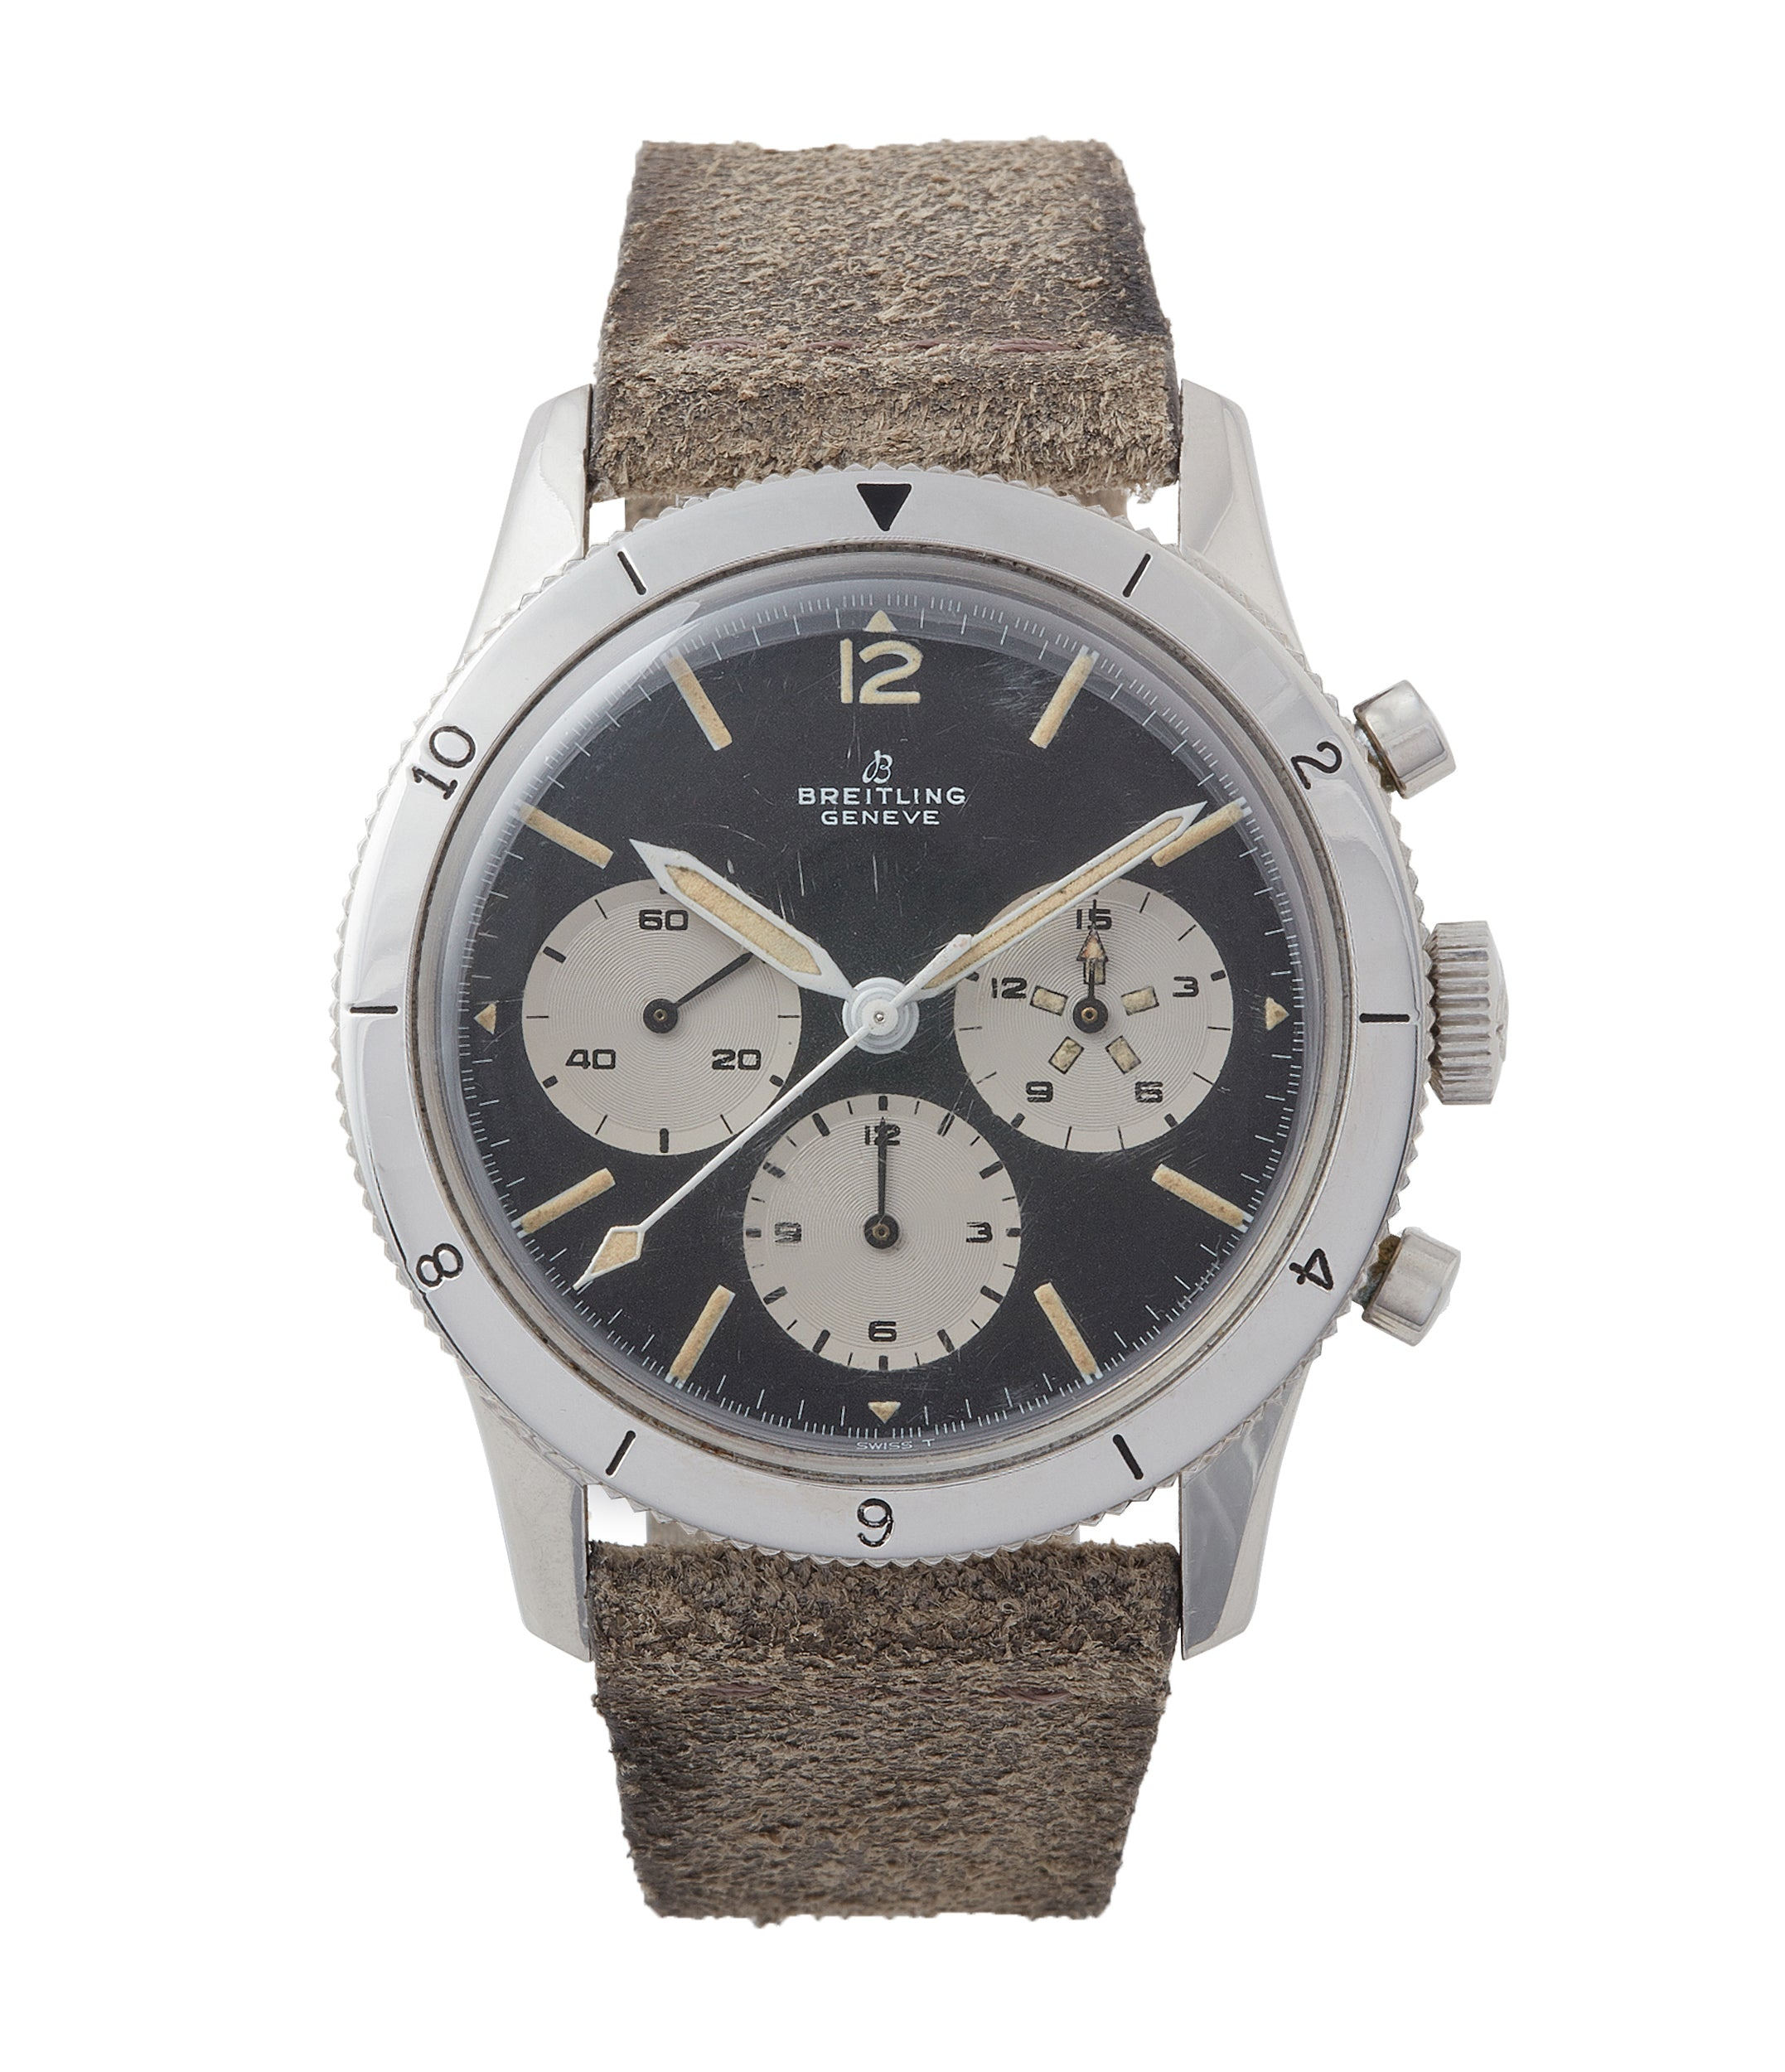 buy vintage Breitling 765 AVI Cal. 178 manual-winding steel chronograph watch for sale online at A Collected Man London UK specialist of rare watches